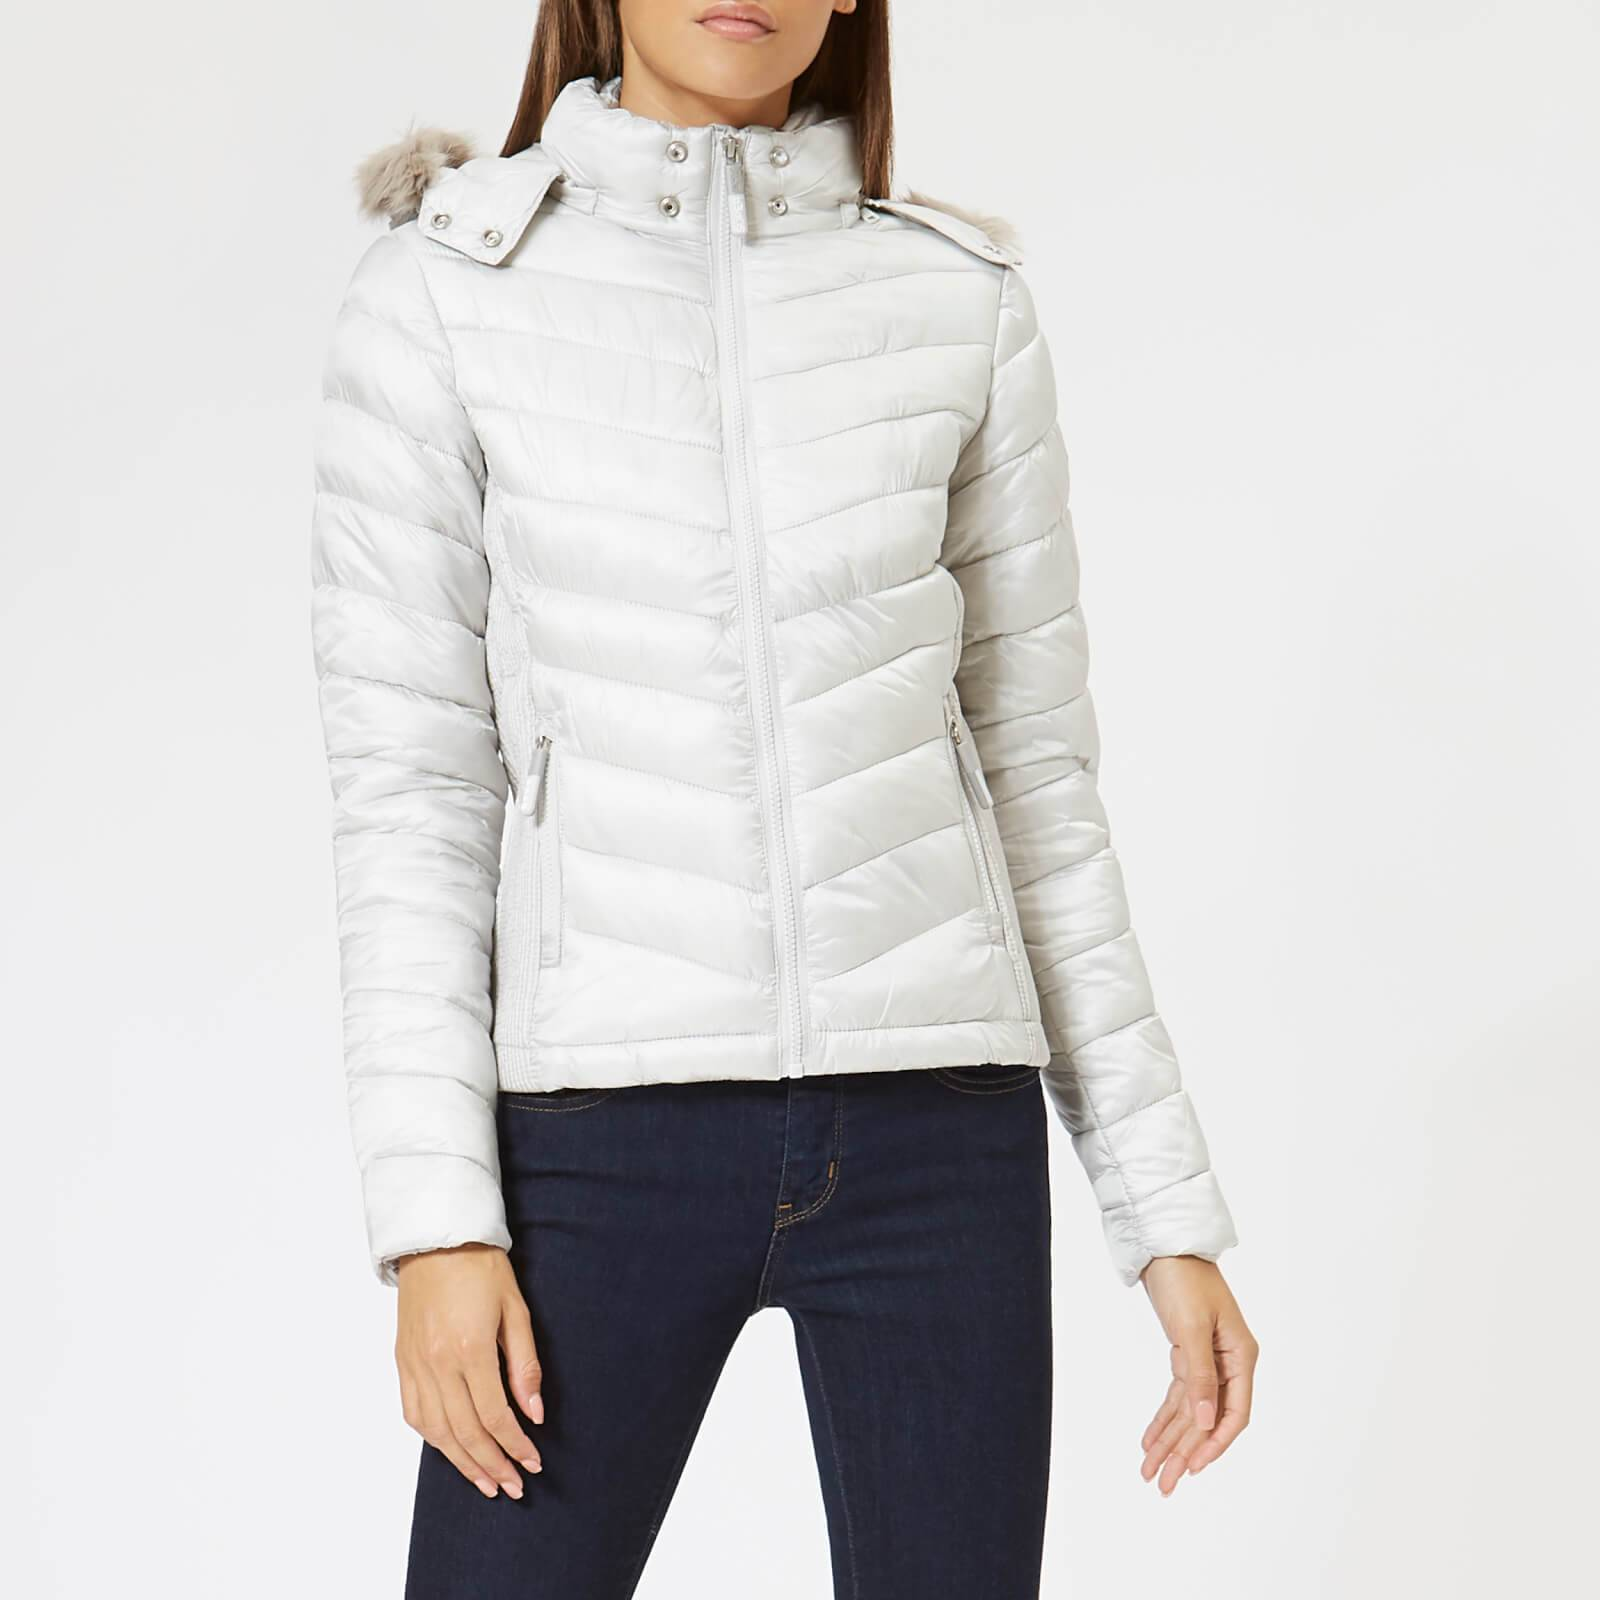 Superdry Women's Hooded Luxe Chevron Fuji Jacket - Pearl - UK 14 - White